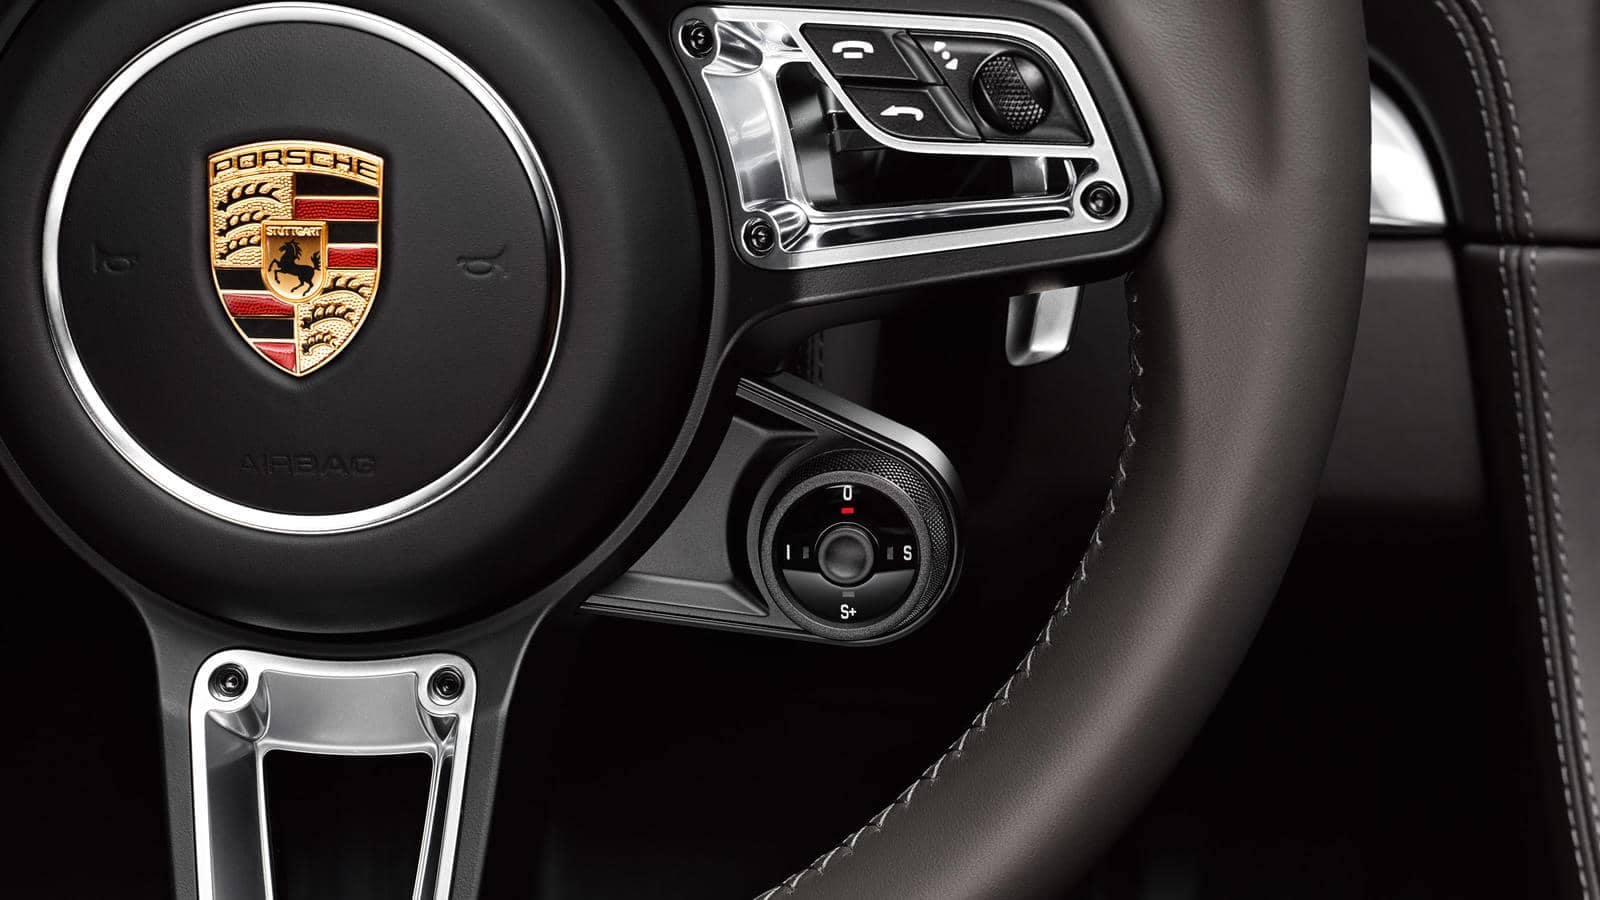 2018 Porsche 718 Cayman Steering wheel